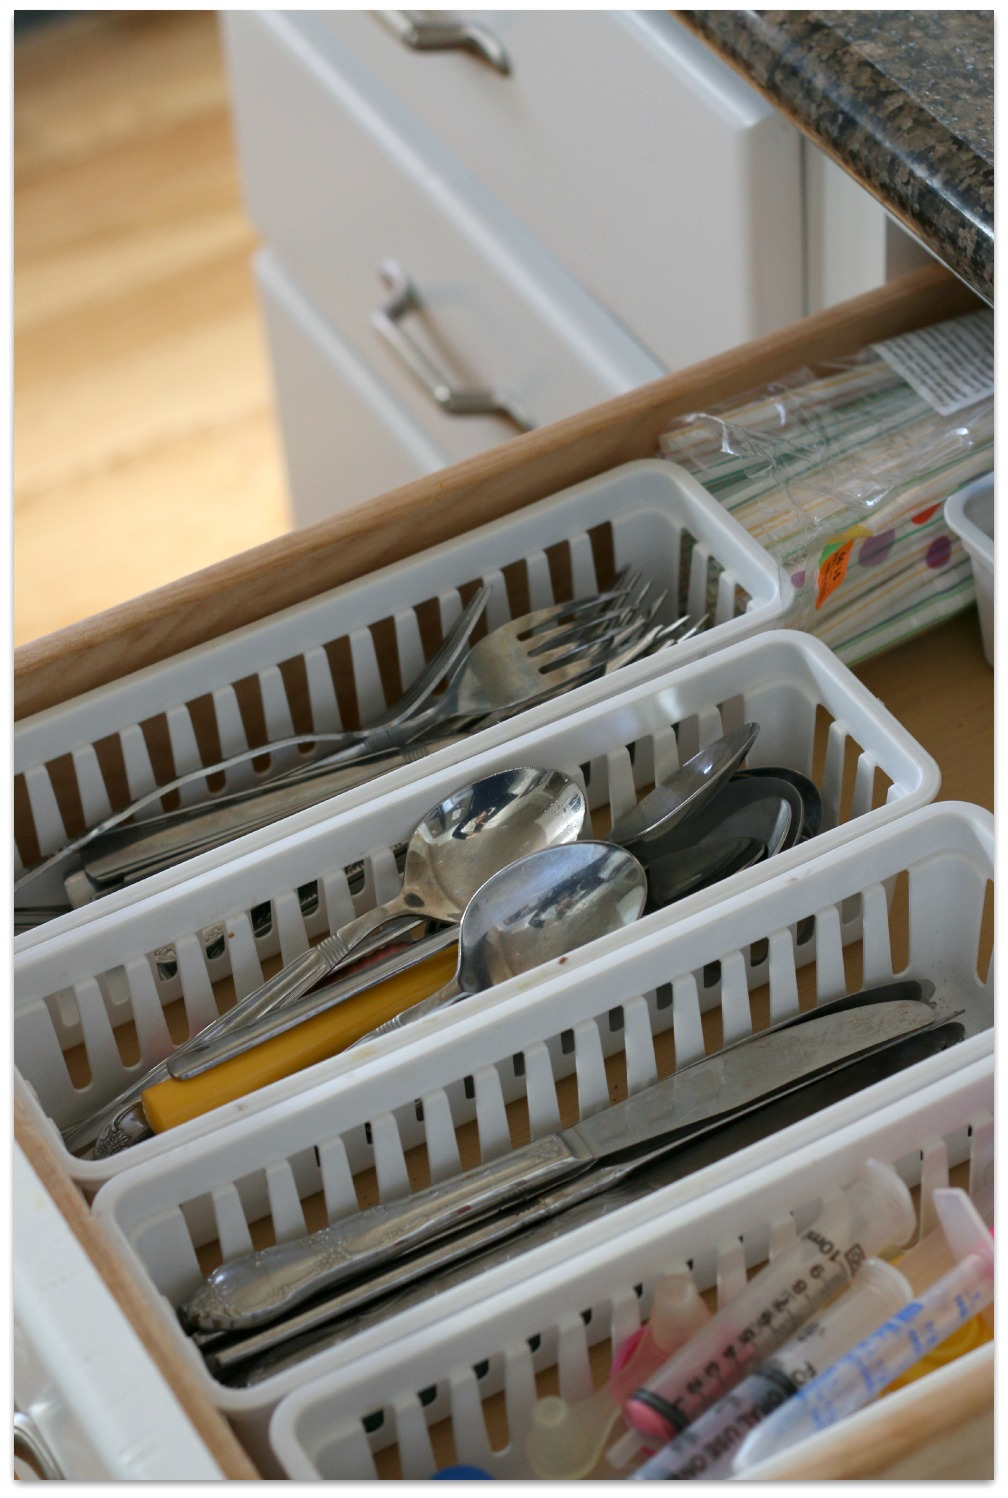 exceptional How To Keep Kitchen Clean And Organized #3: My Guide to Kitchen Cleaning for Clean Freaks